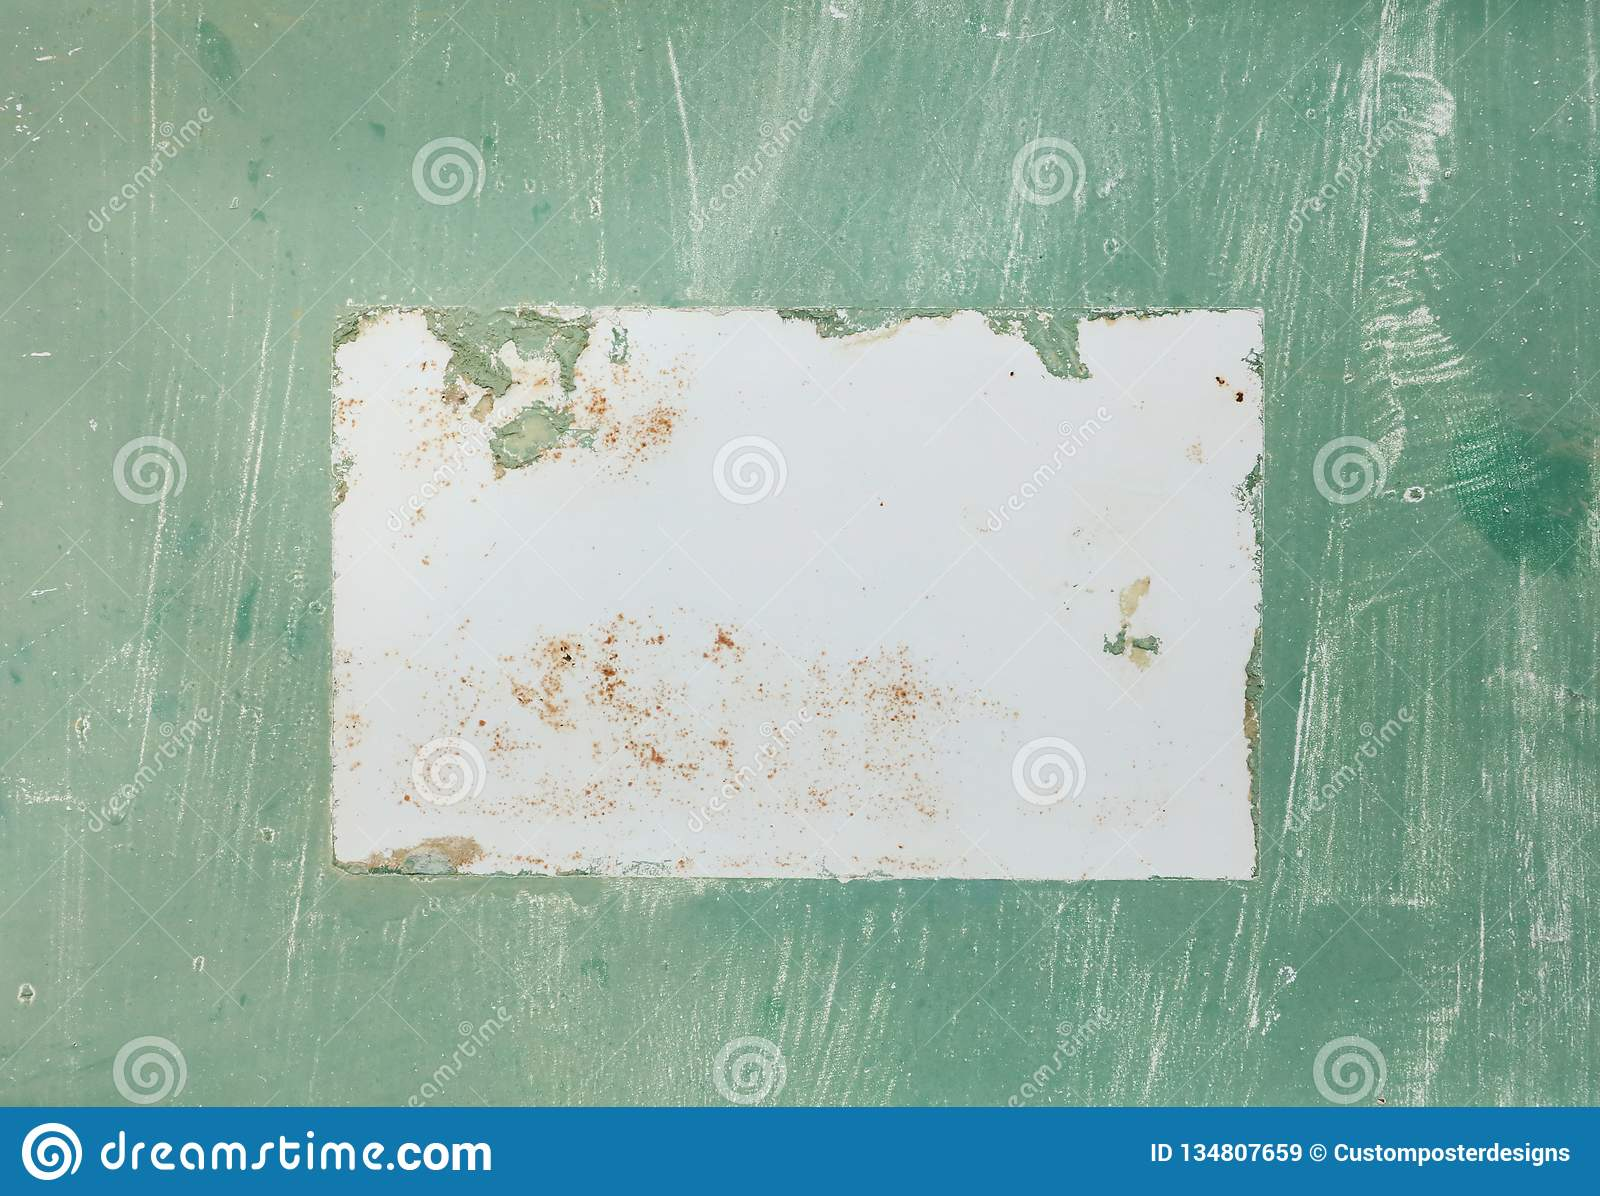 An antique aged sign with green textured paint and a white rectangle blank area in the middle.